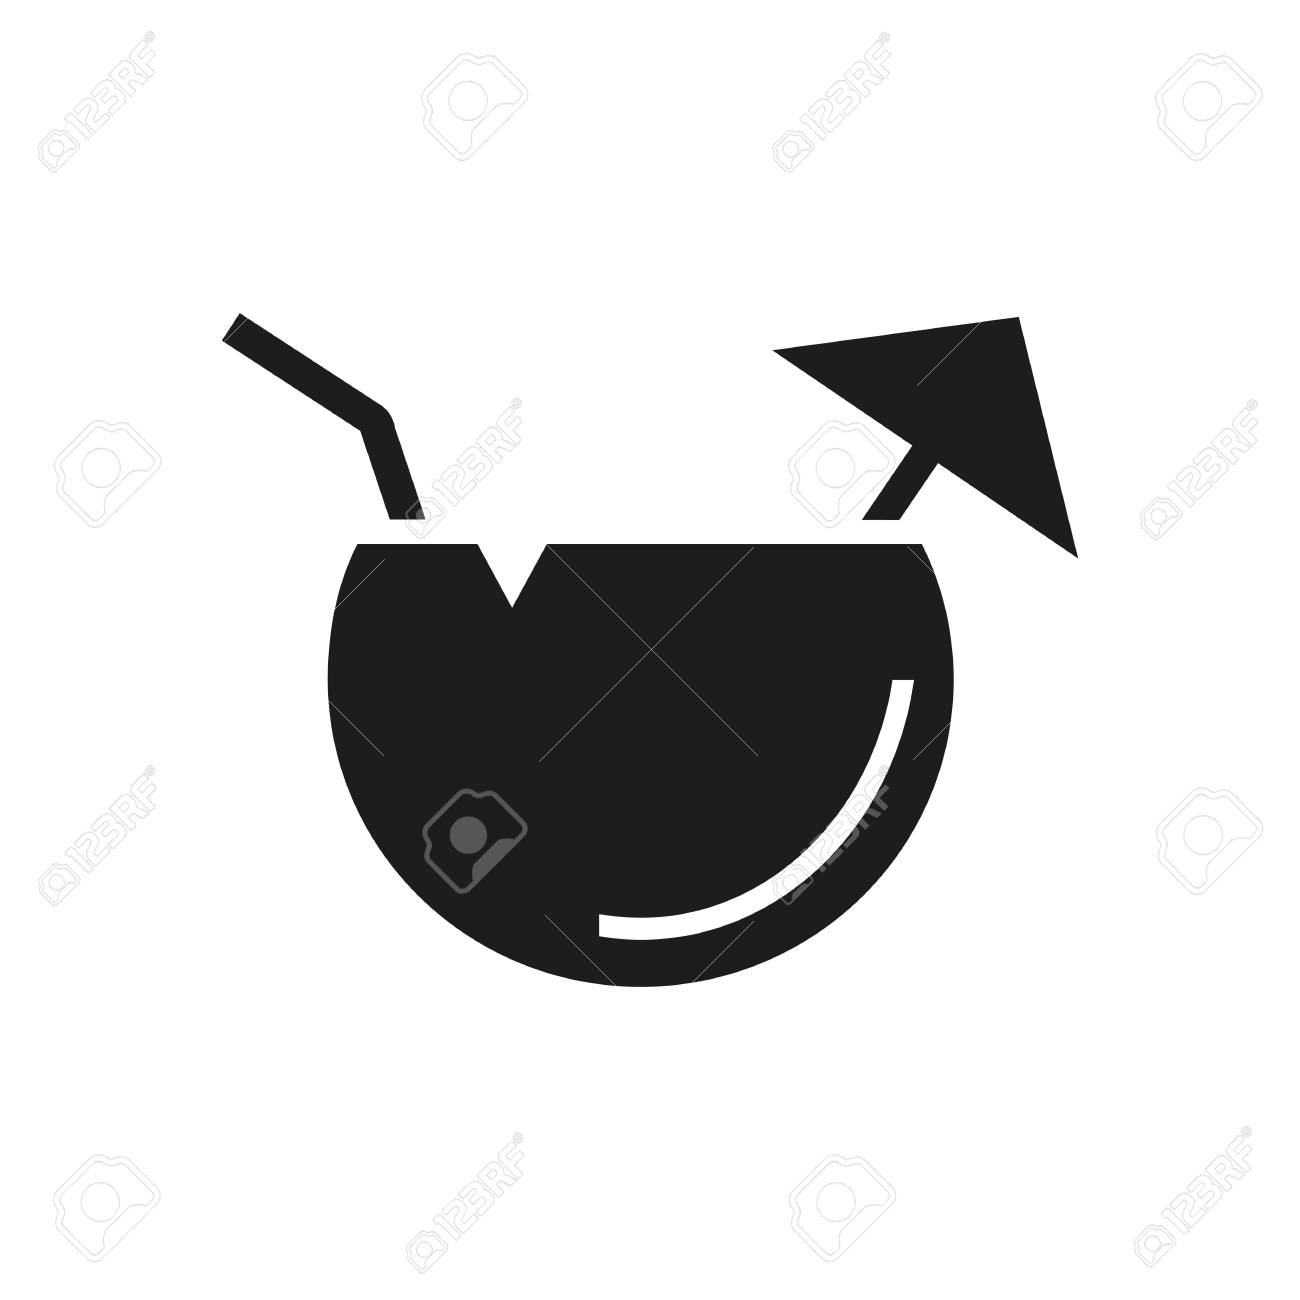 f58a85602888 Simple icon of fruit cocktail with umbrella and straw. Tropical..